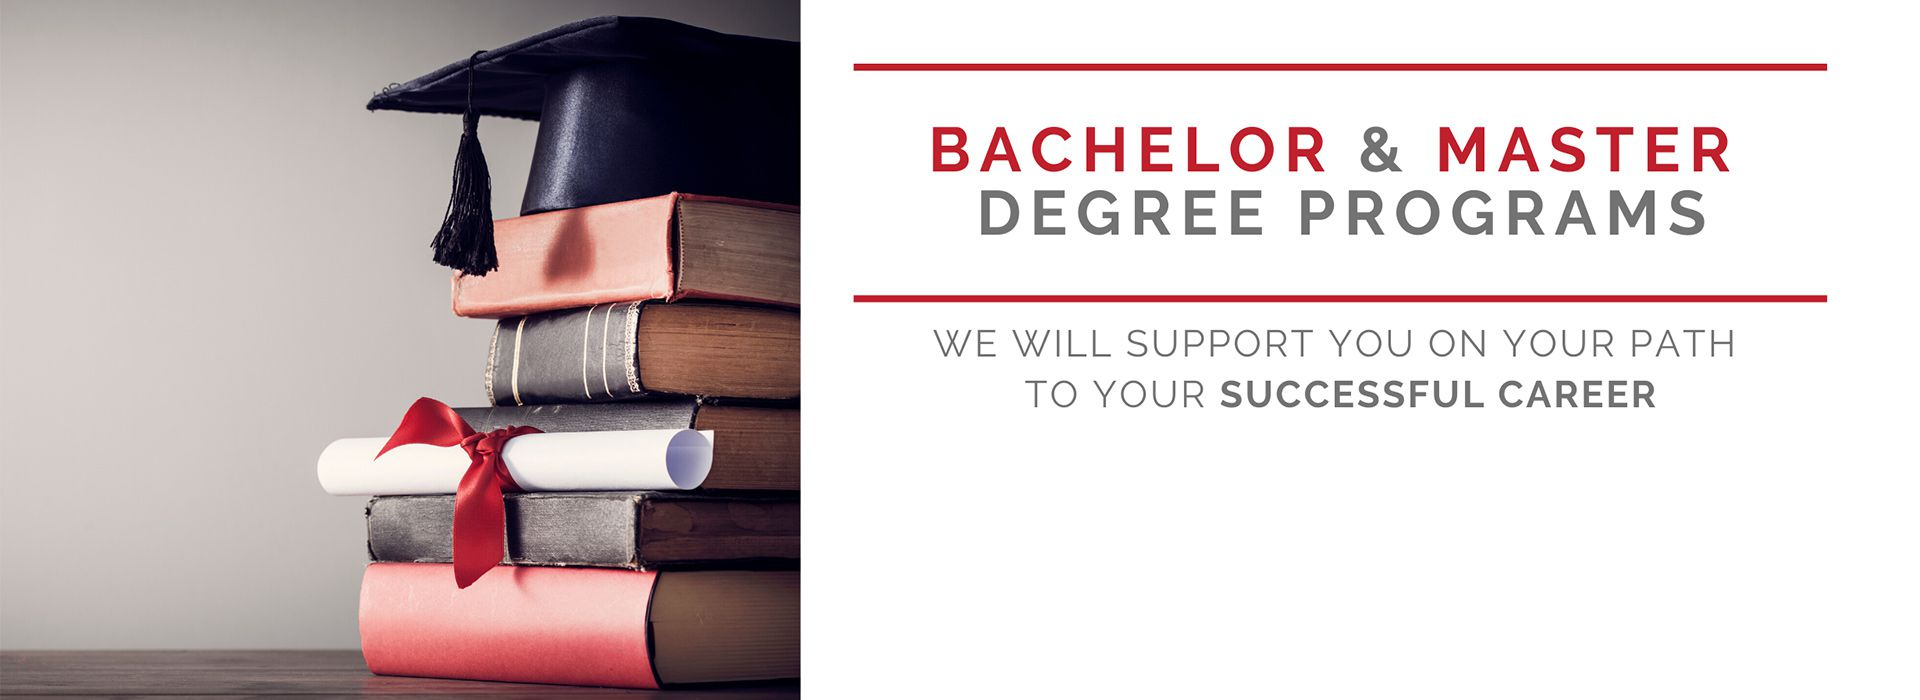 Bachelor & Master Degree Programs